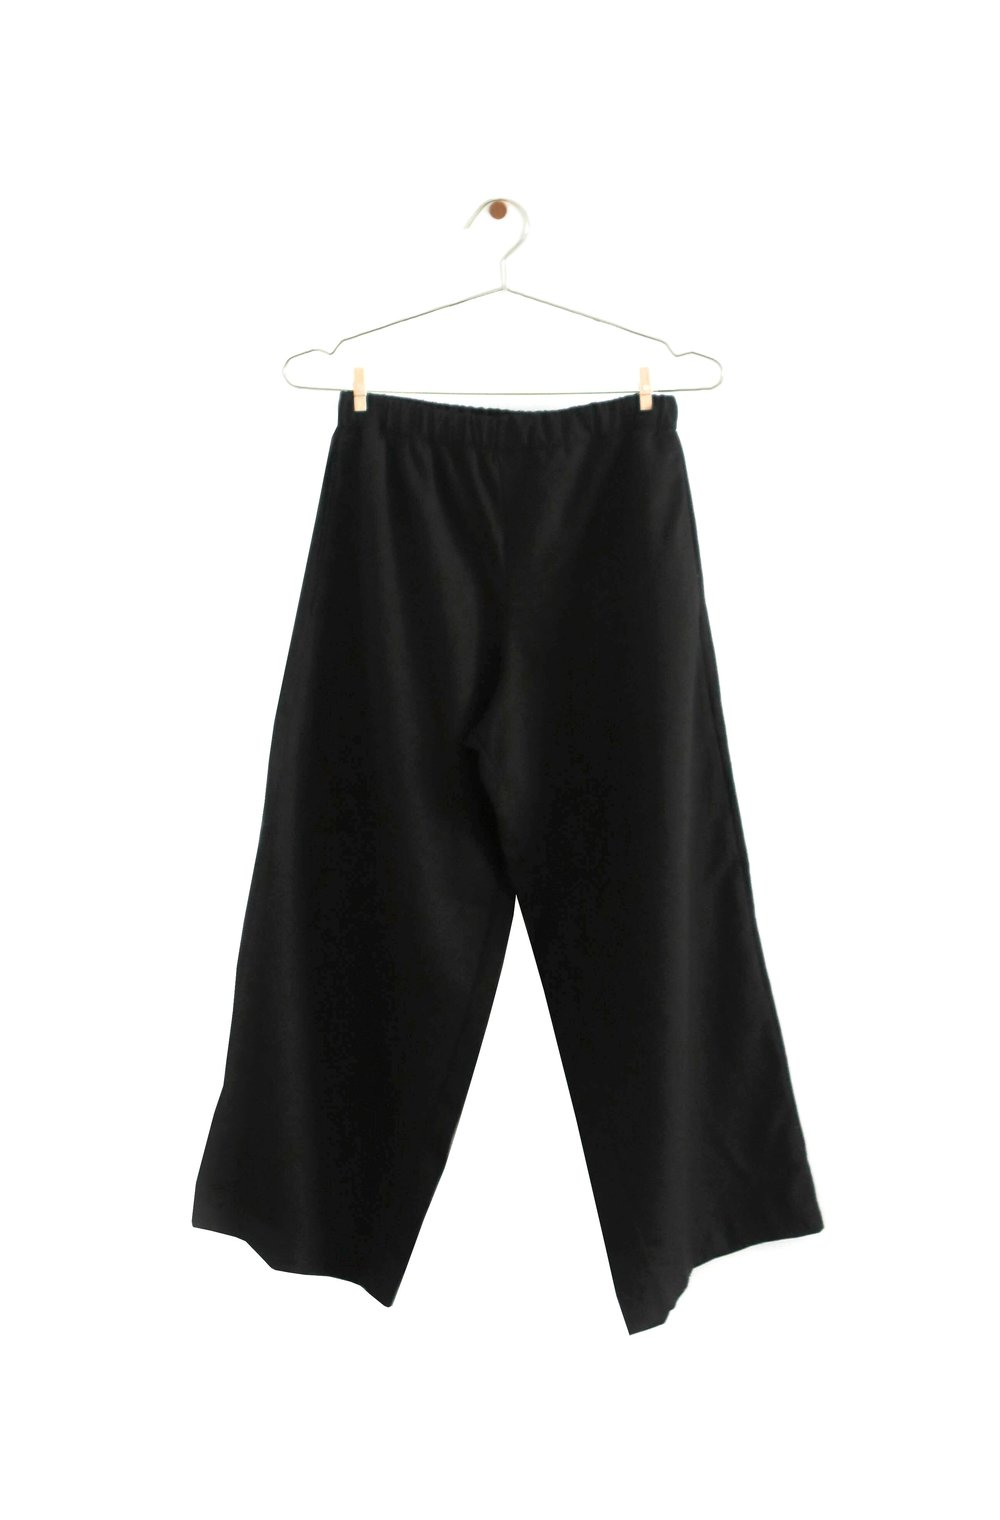 bloom_pants_black_new_f87d939a-ed9b-4190-bfa9-539854e73bde.jpg